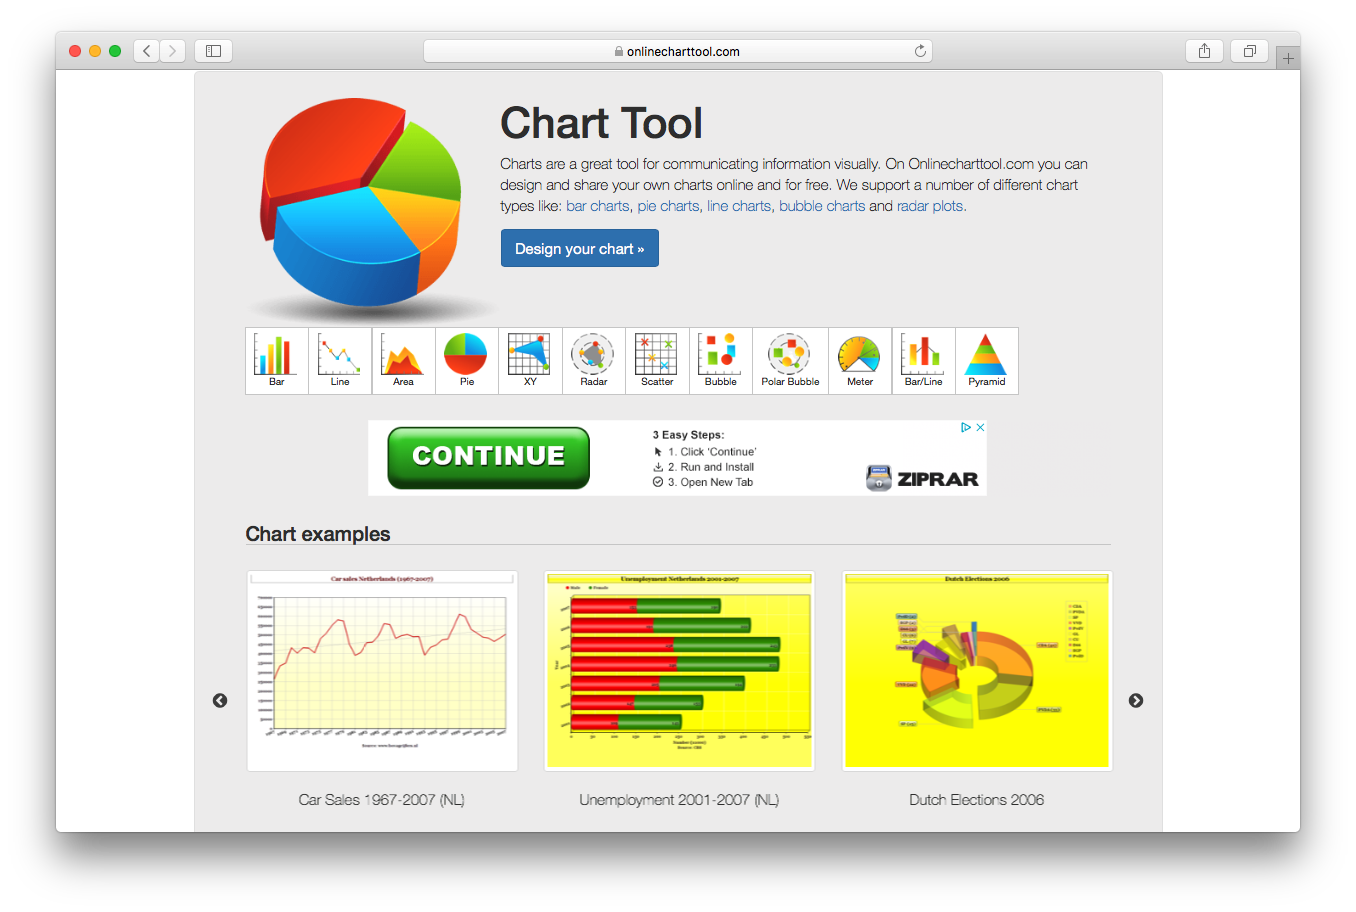 Online chart tool design bar pie line bubble radar